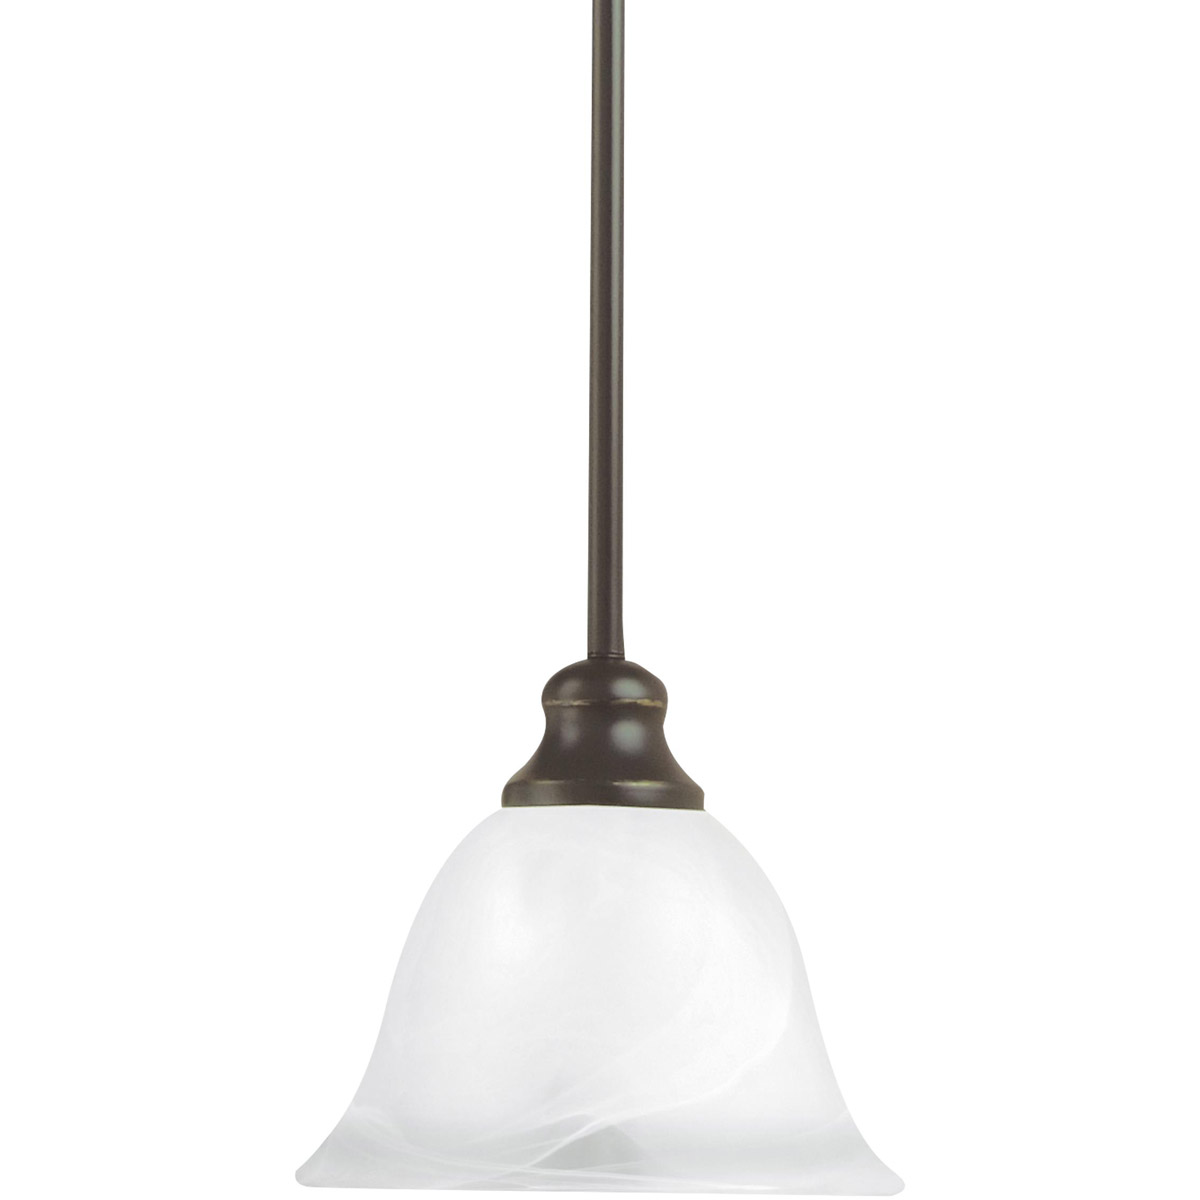 Sea Gull Lighting Windgate 1 Light Mini Pendant in Heirloom Bronze 61940-782